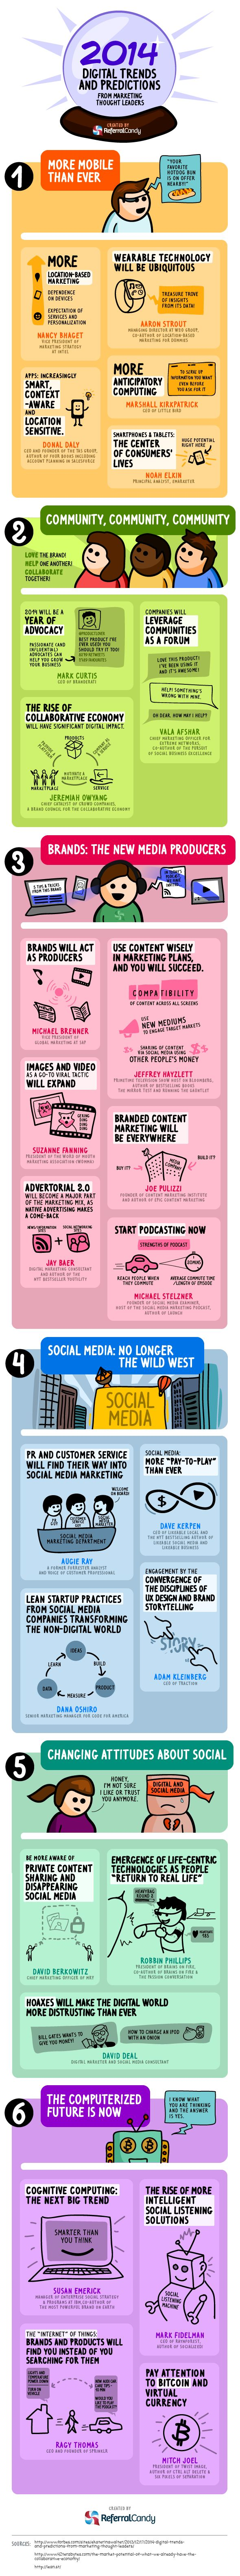 2014 Digital Trends and Predictions from Marketing Thought Leaders [Infographic] - ReferralCandy